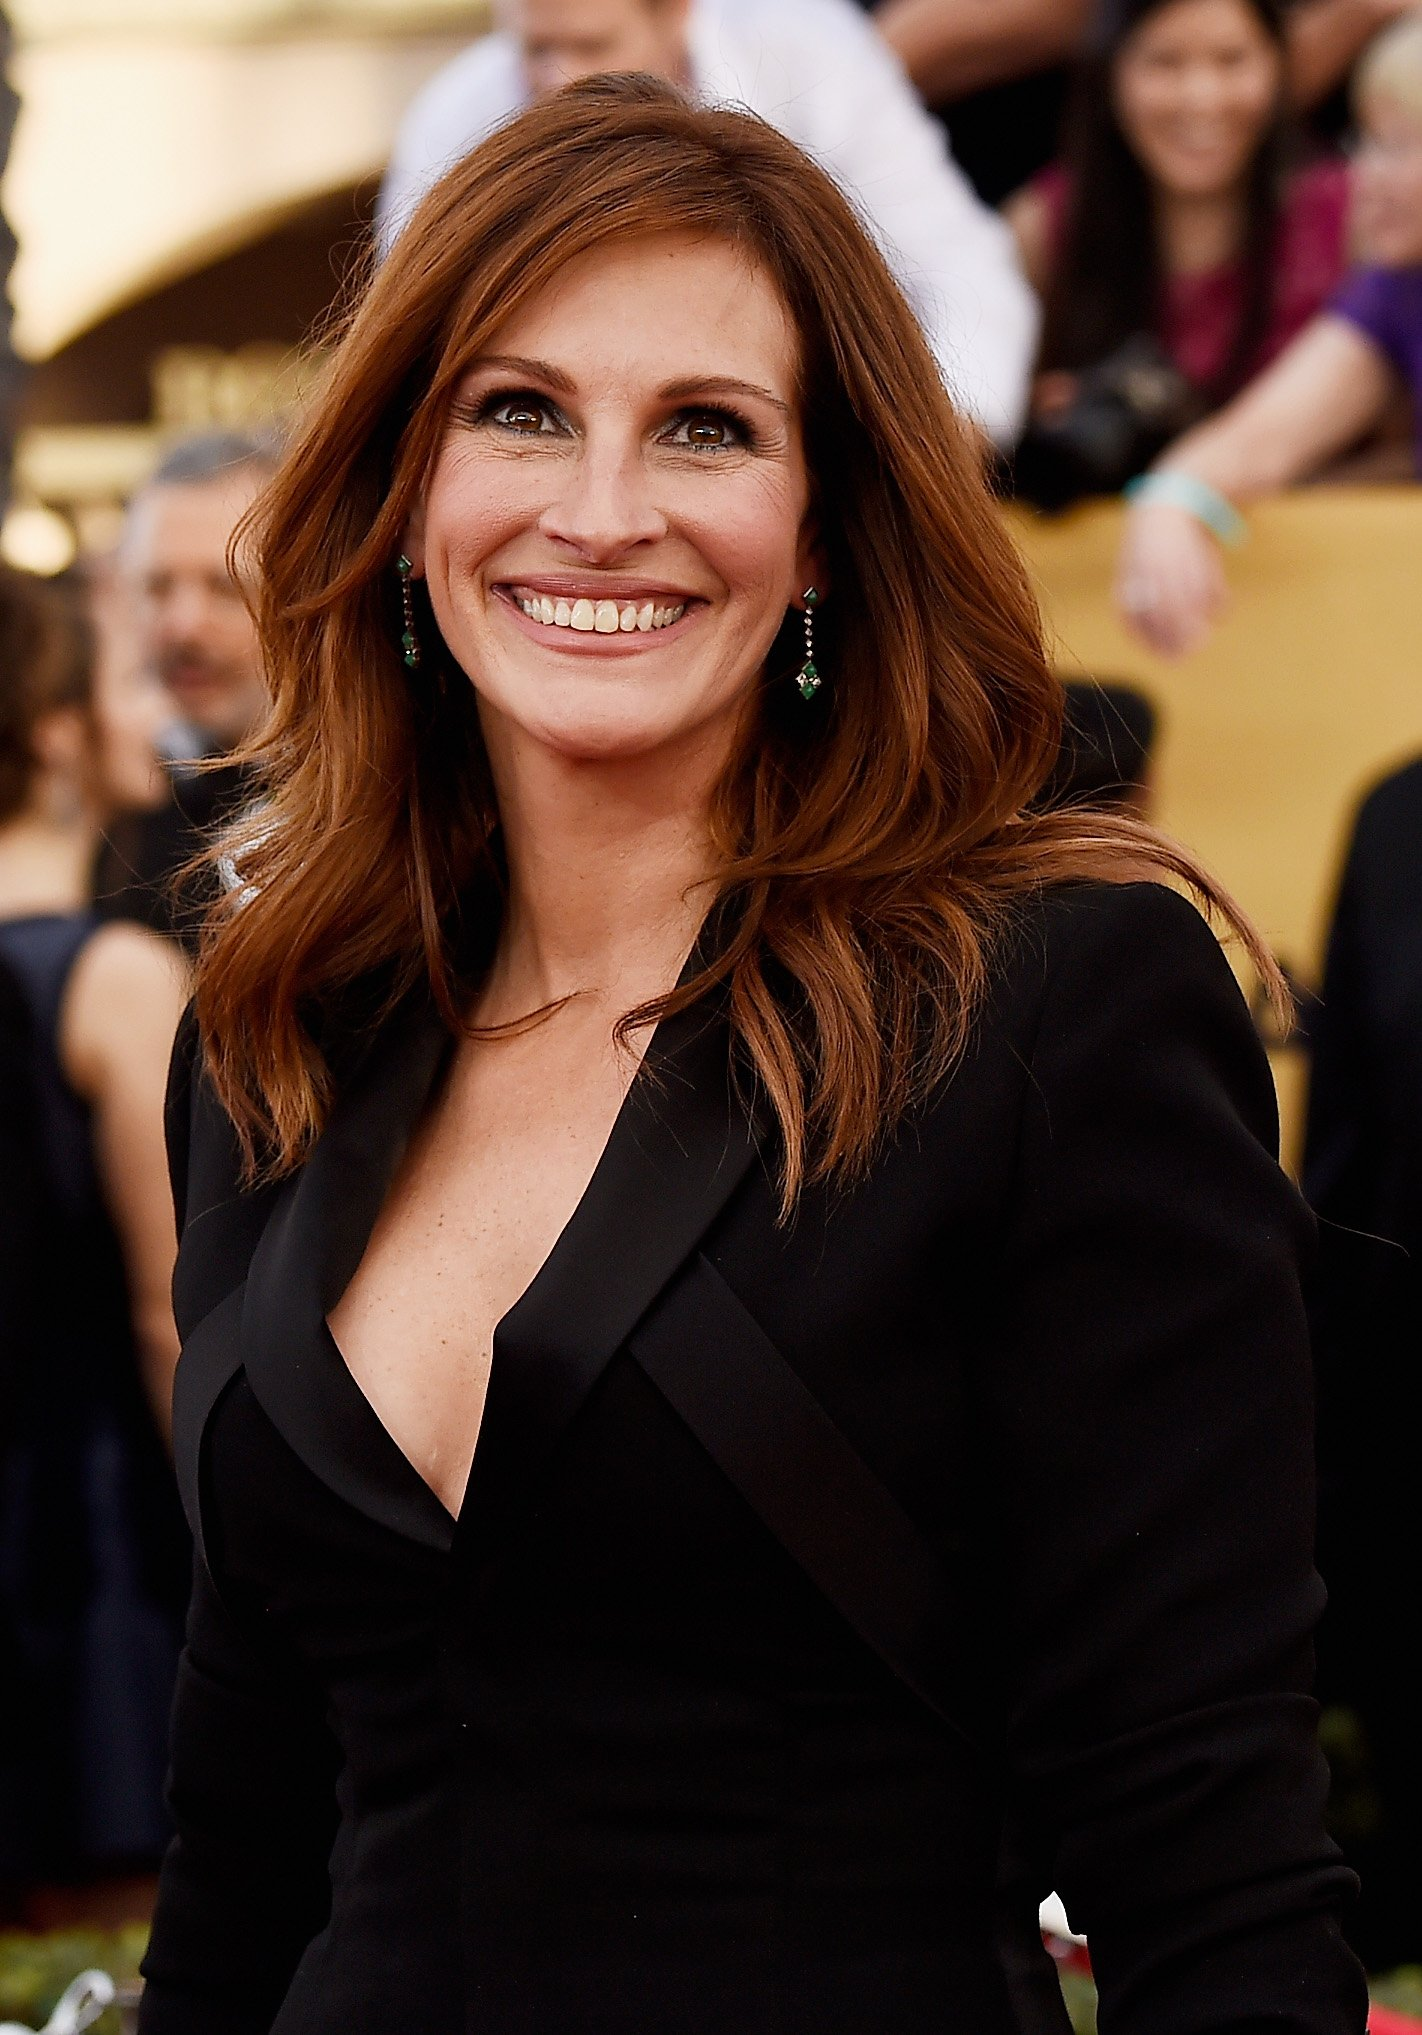 Source: Getty Images / Julia Roberts attends the 21st Annual Screen Actors Guild Awards at The Shrine Auditorium on January 25, 2015 in Los Angeles, California